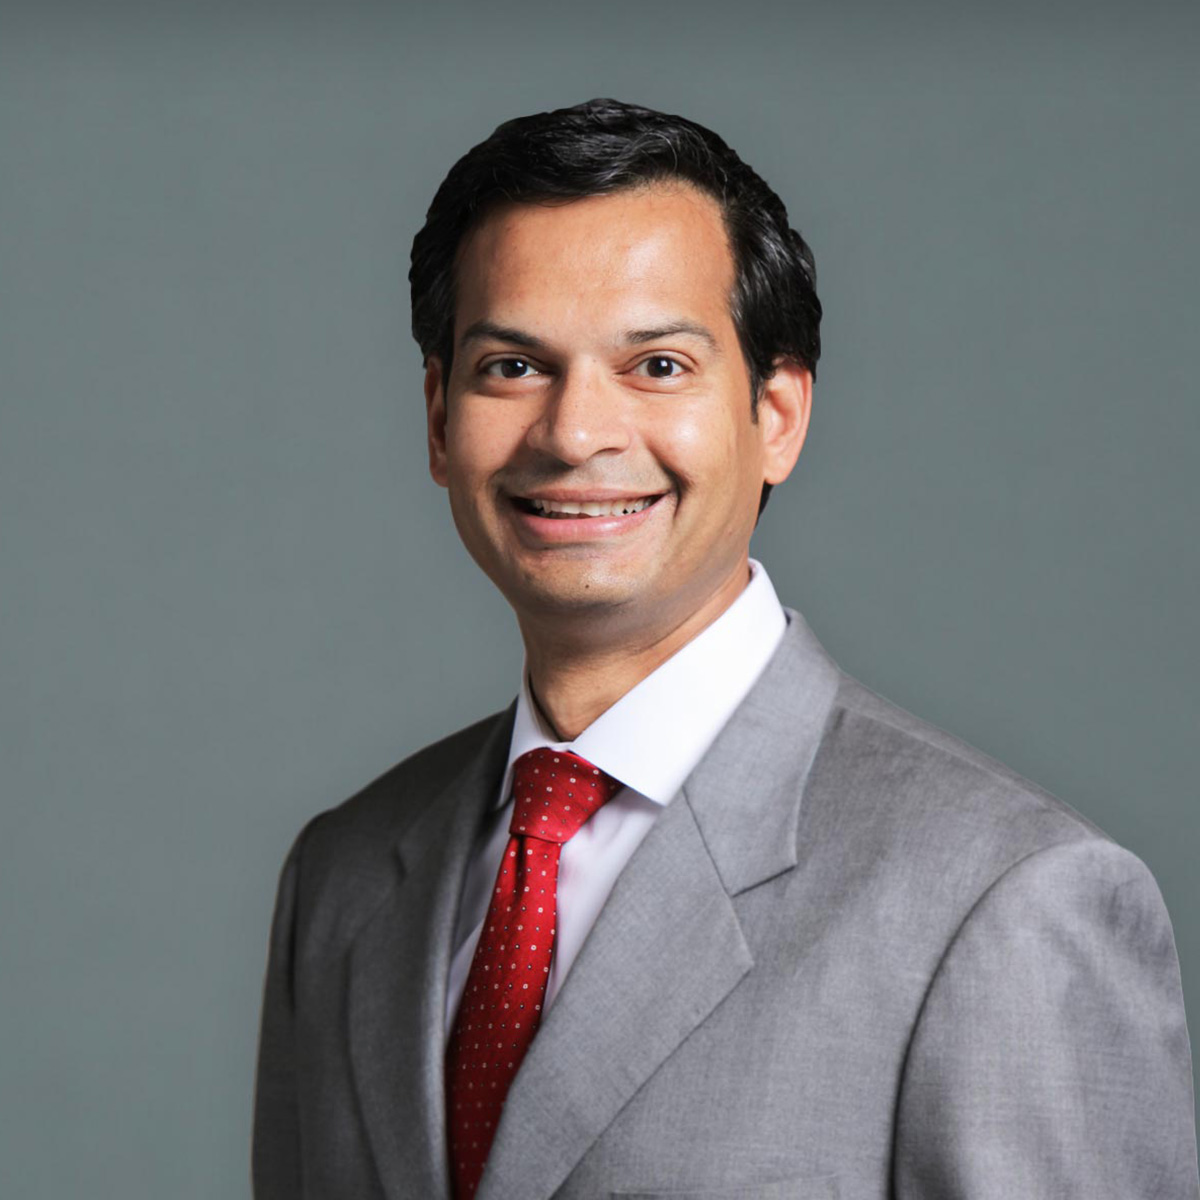 Nilesh D. Patel,MD. Head & Neck Surgery